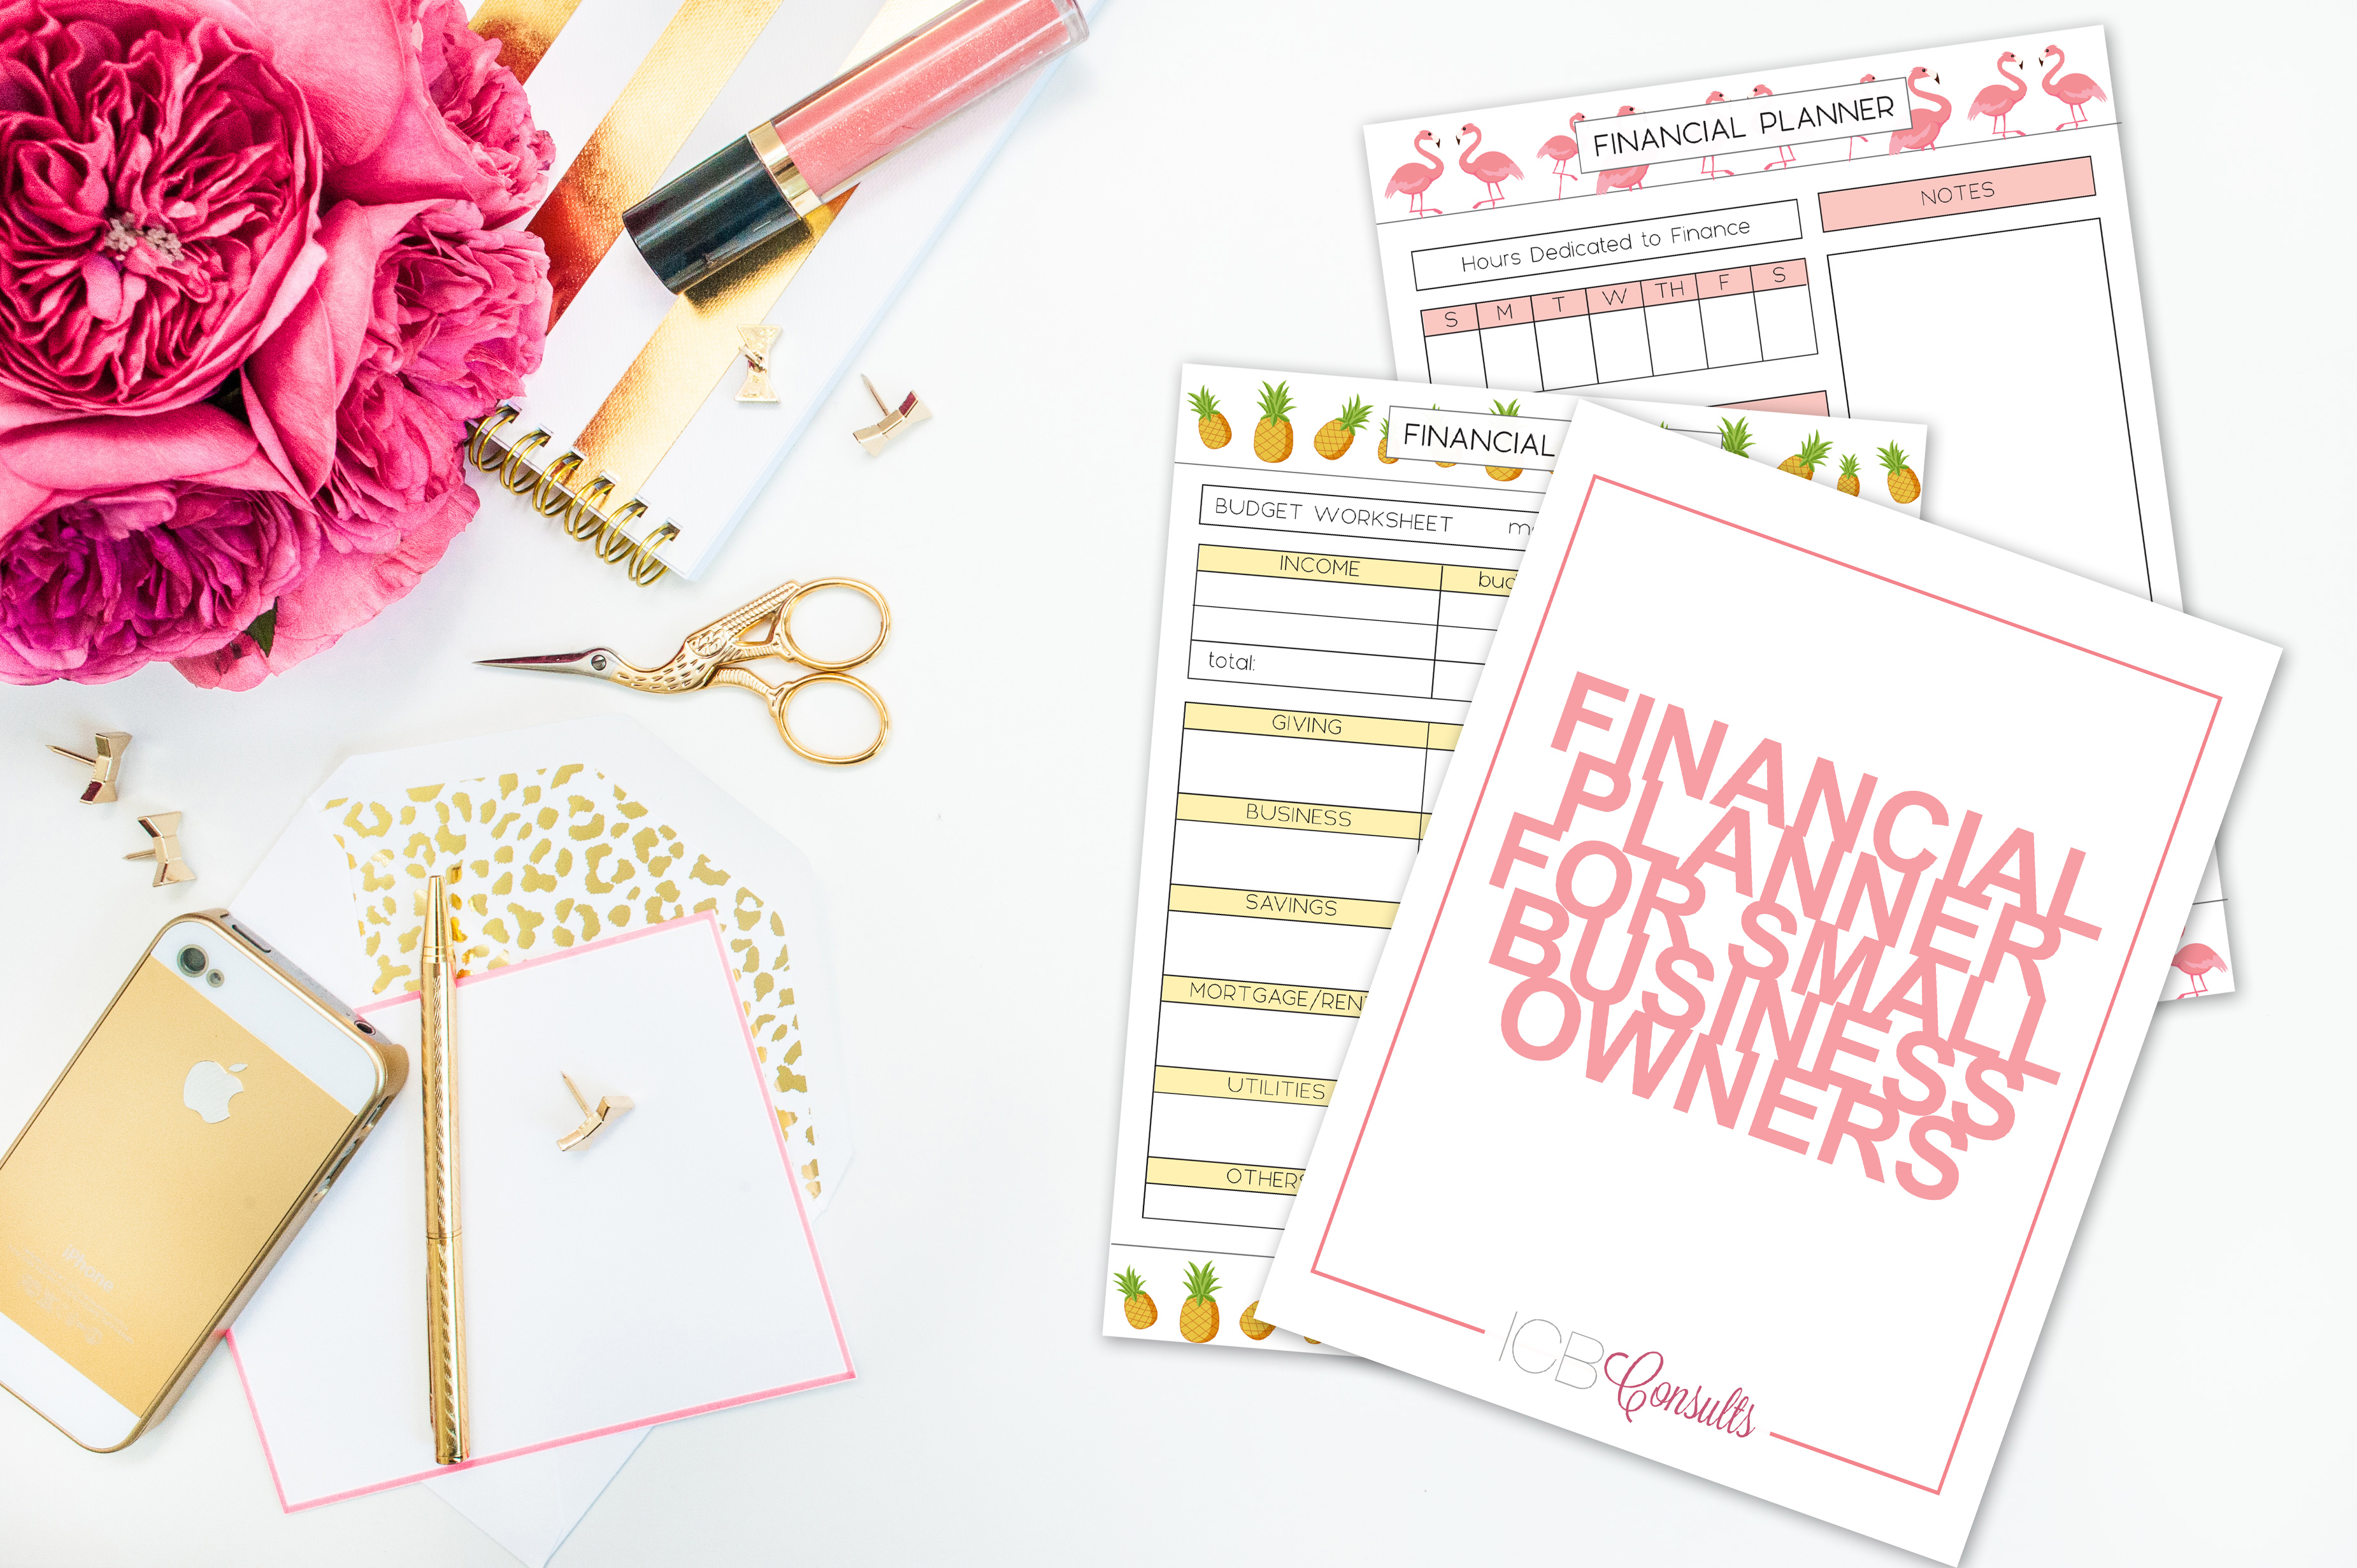 Financial Planner For Small Business Owners - Imperfect Concepts